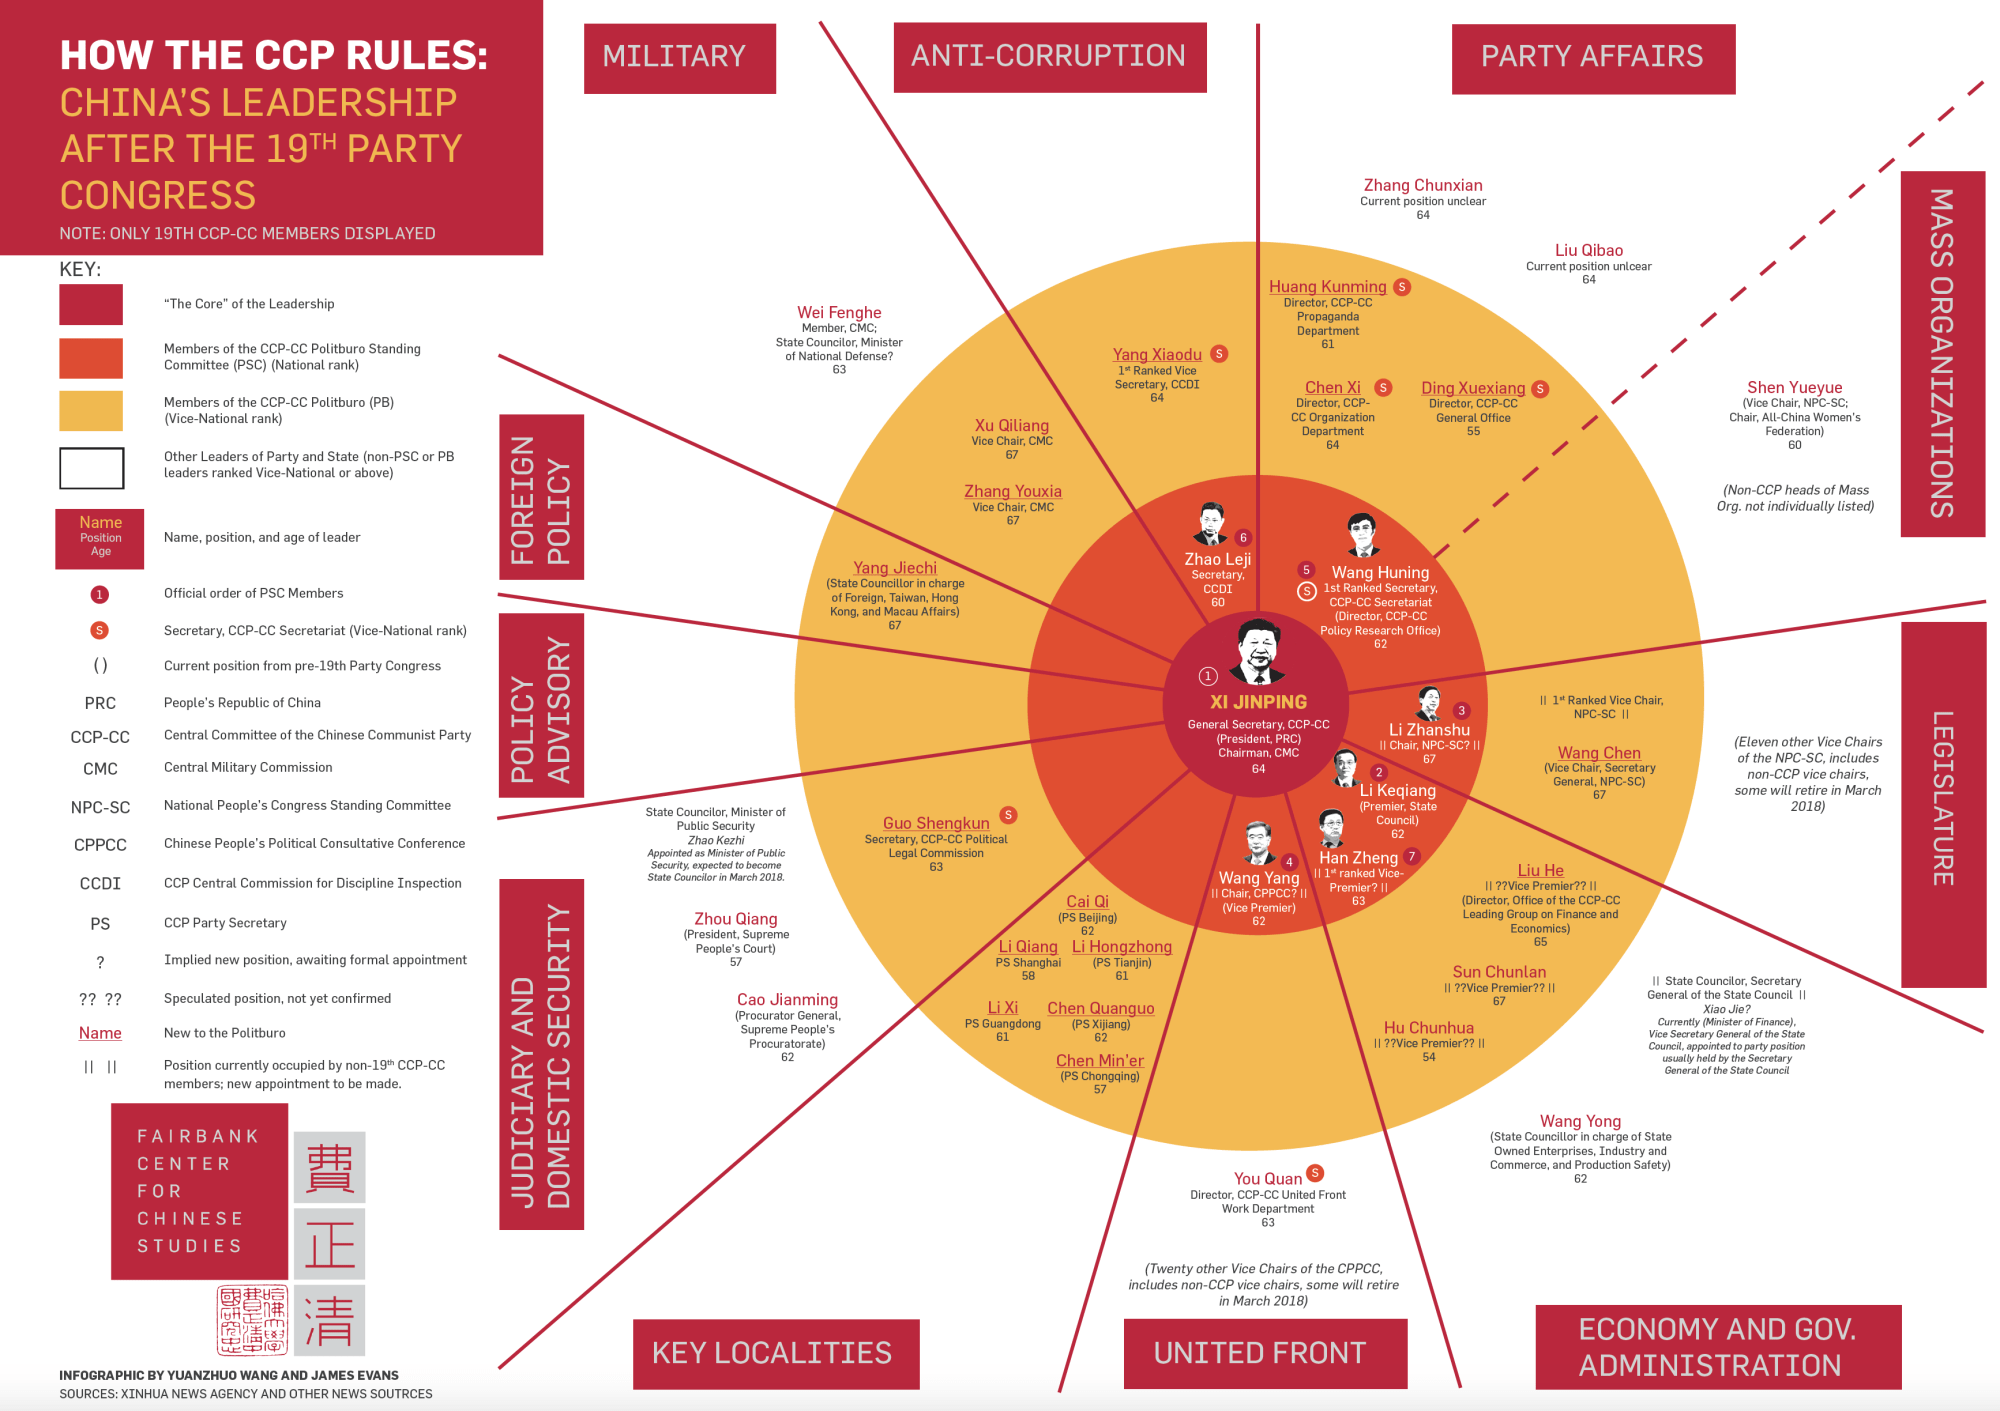 hight resolution of how the ccp rules china s leadership after the 19th party congress infographic by yuan wang and james evans